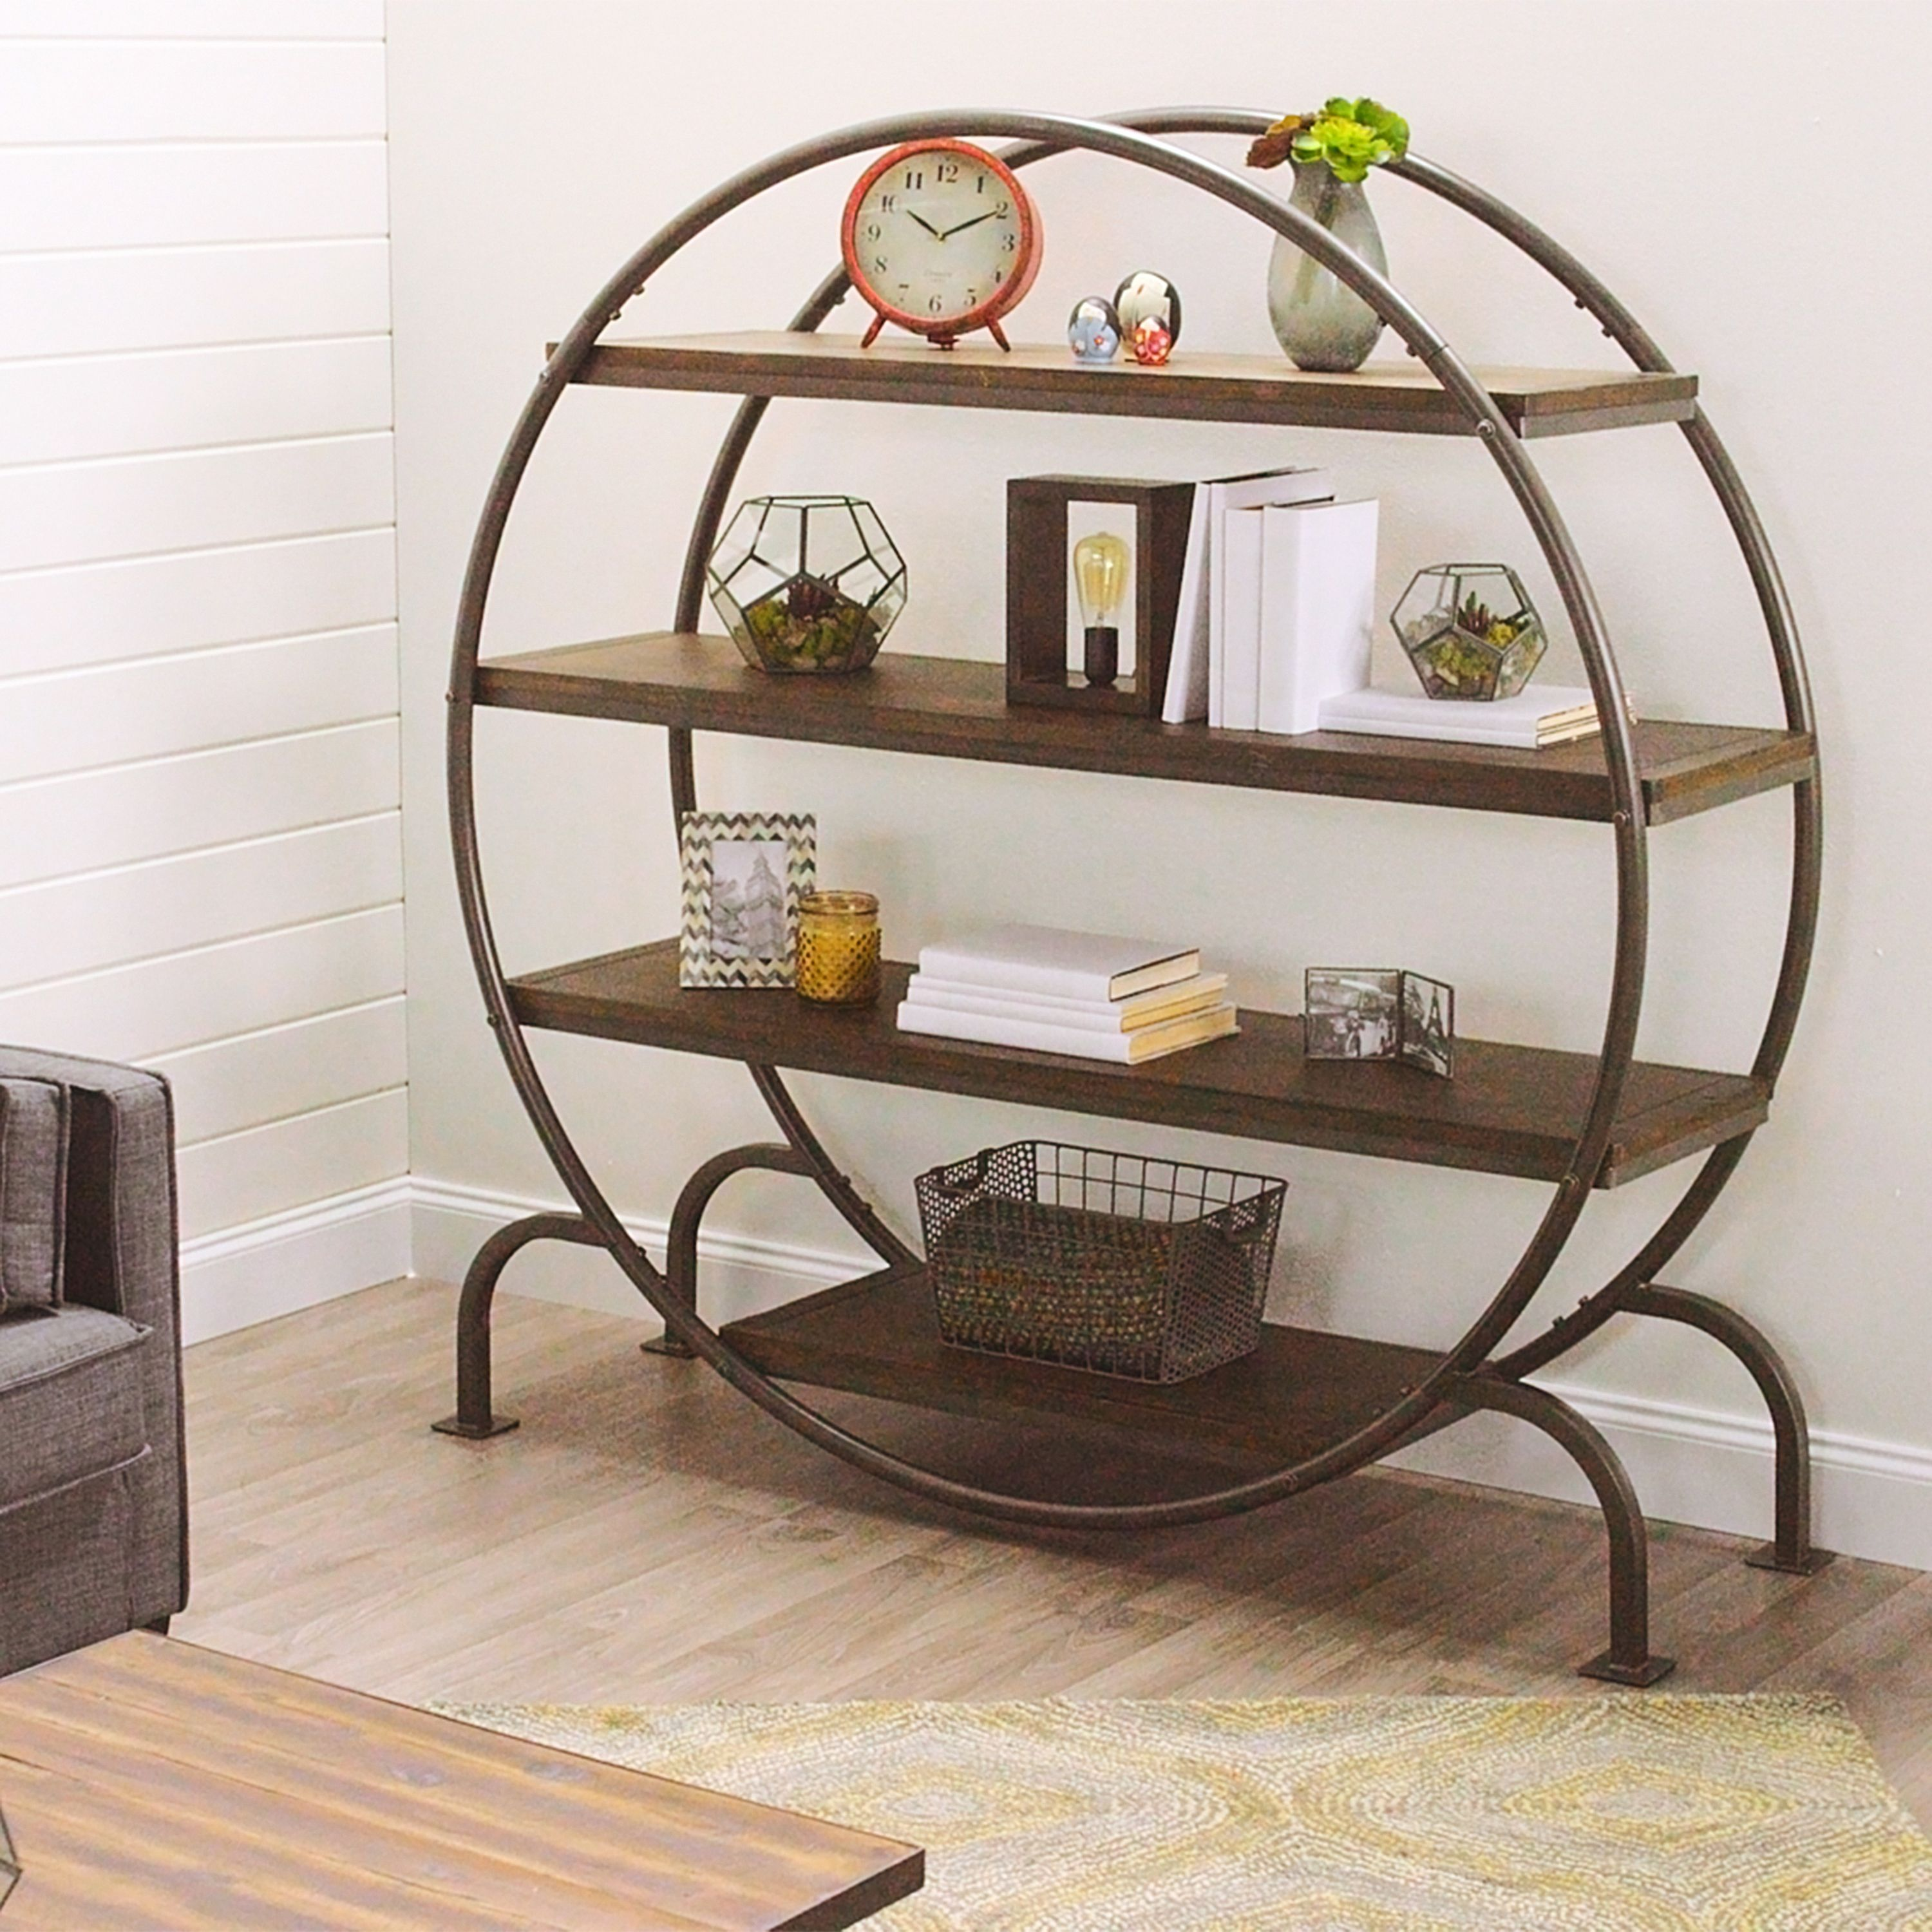 Round Bookcase Urban Industrial Decor Round Bookshelf Vintage